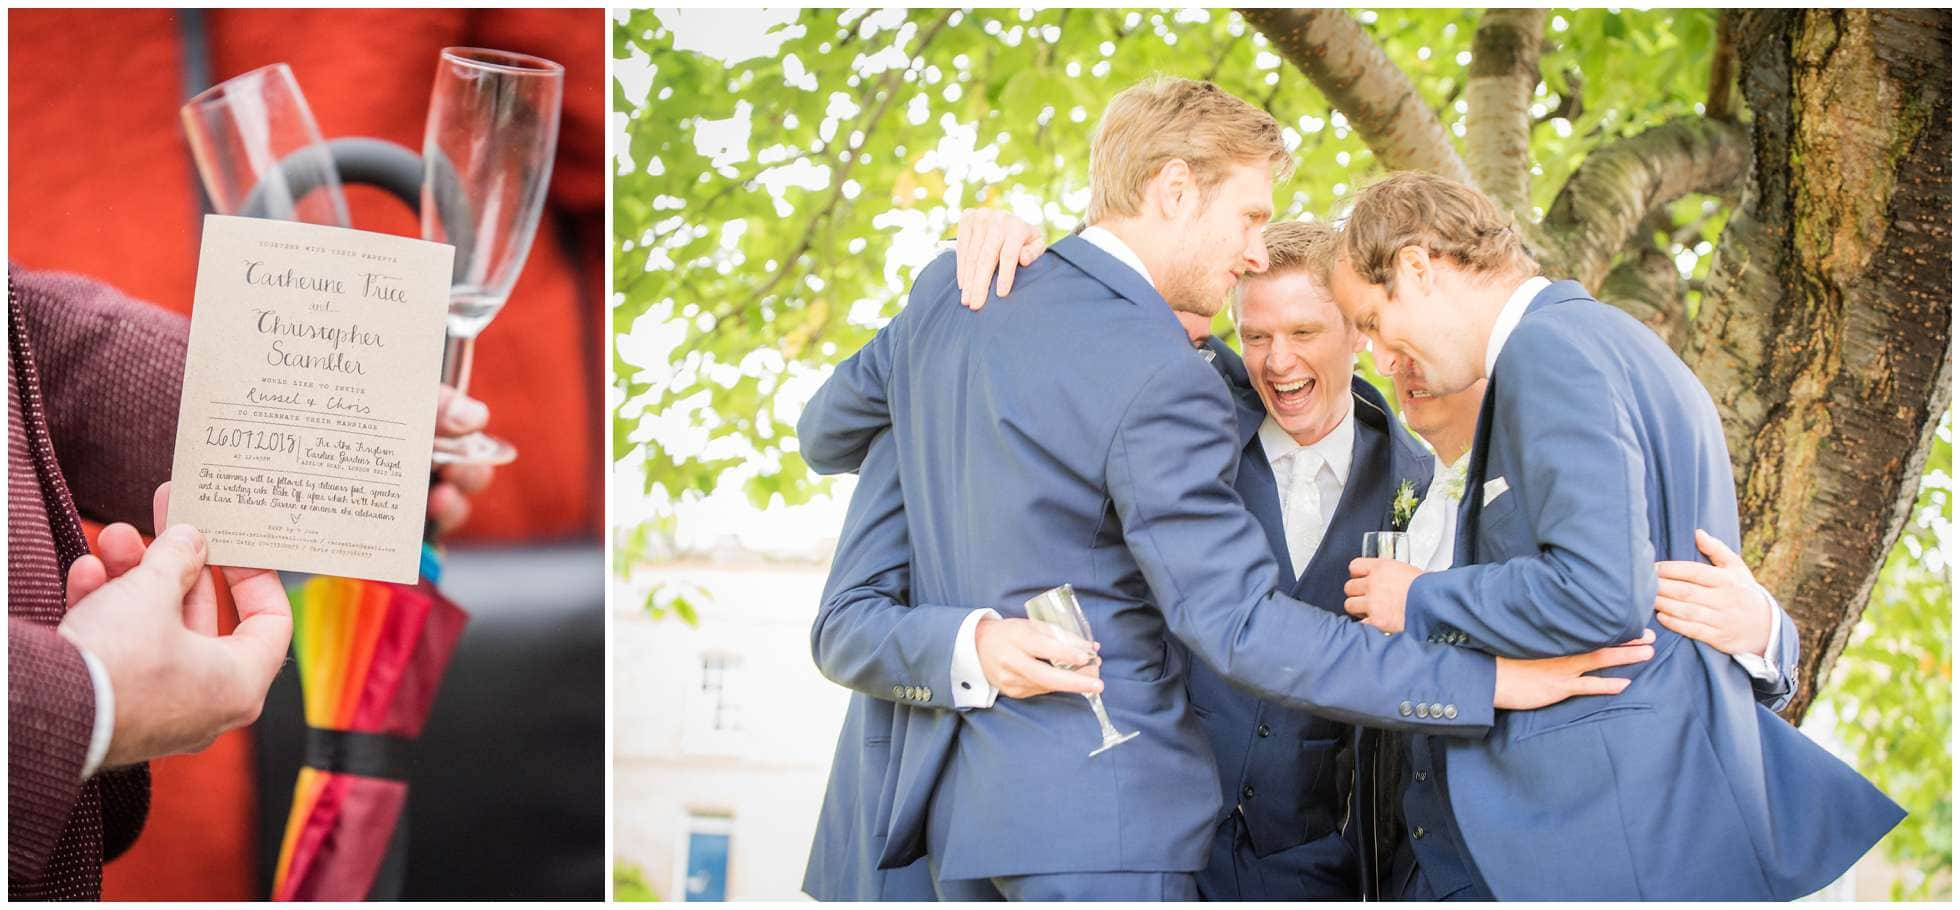 The groomsmen congratulate their best mate